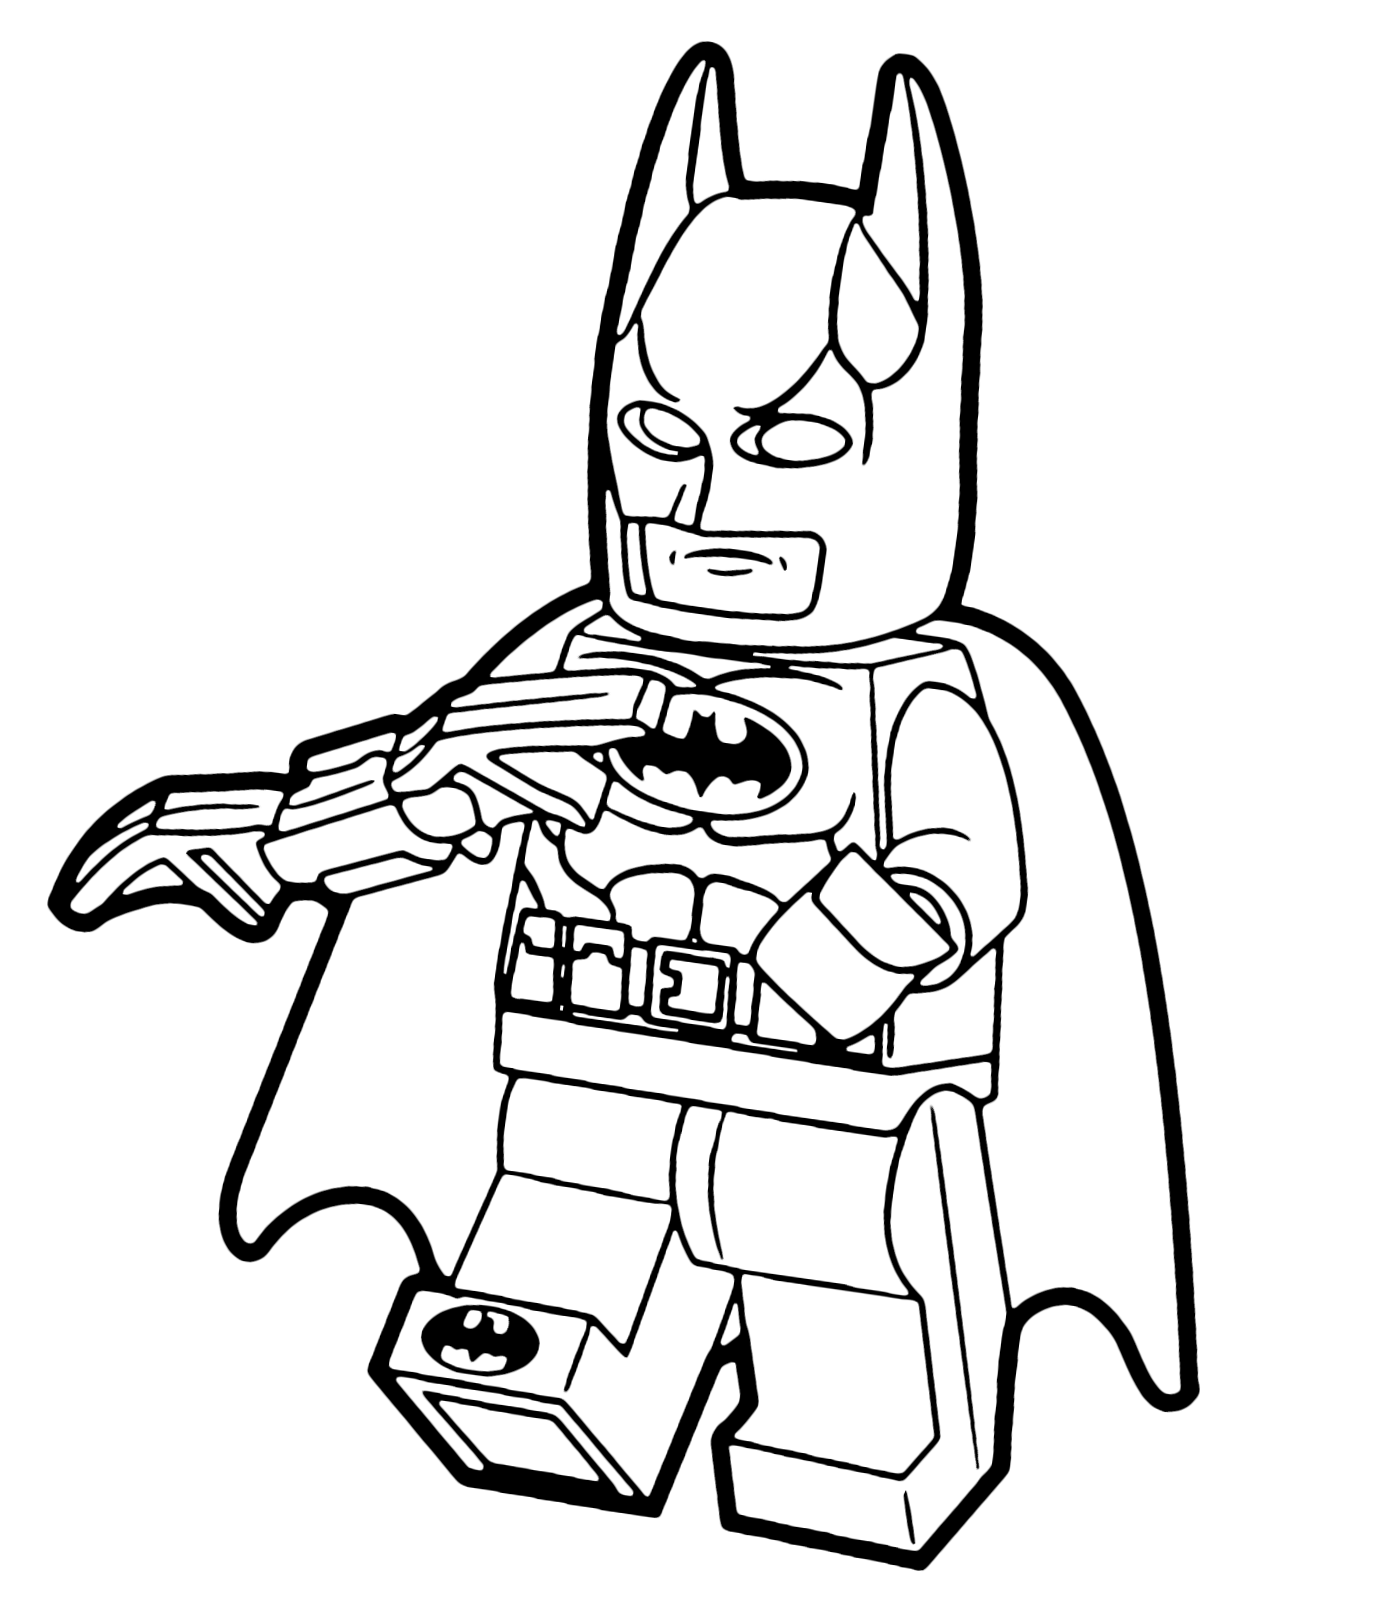 batman the dc comics superhero in addition coloring pages of cars 2 the movie 1 on coloring pages of cars 2 the movie including coloring pages of cars 2 the movie 2 on coloring pages of cars 2 the movie additionally coloring pages of cars 2 the movie 3 on coloring pages of cars 2 the movie together with coloring pages of cars 2 the movie 4 on coloring pages of cars 2 the movie